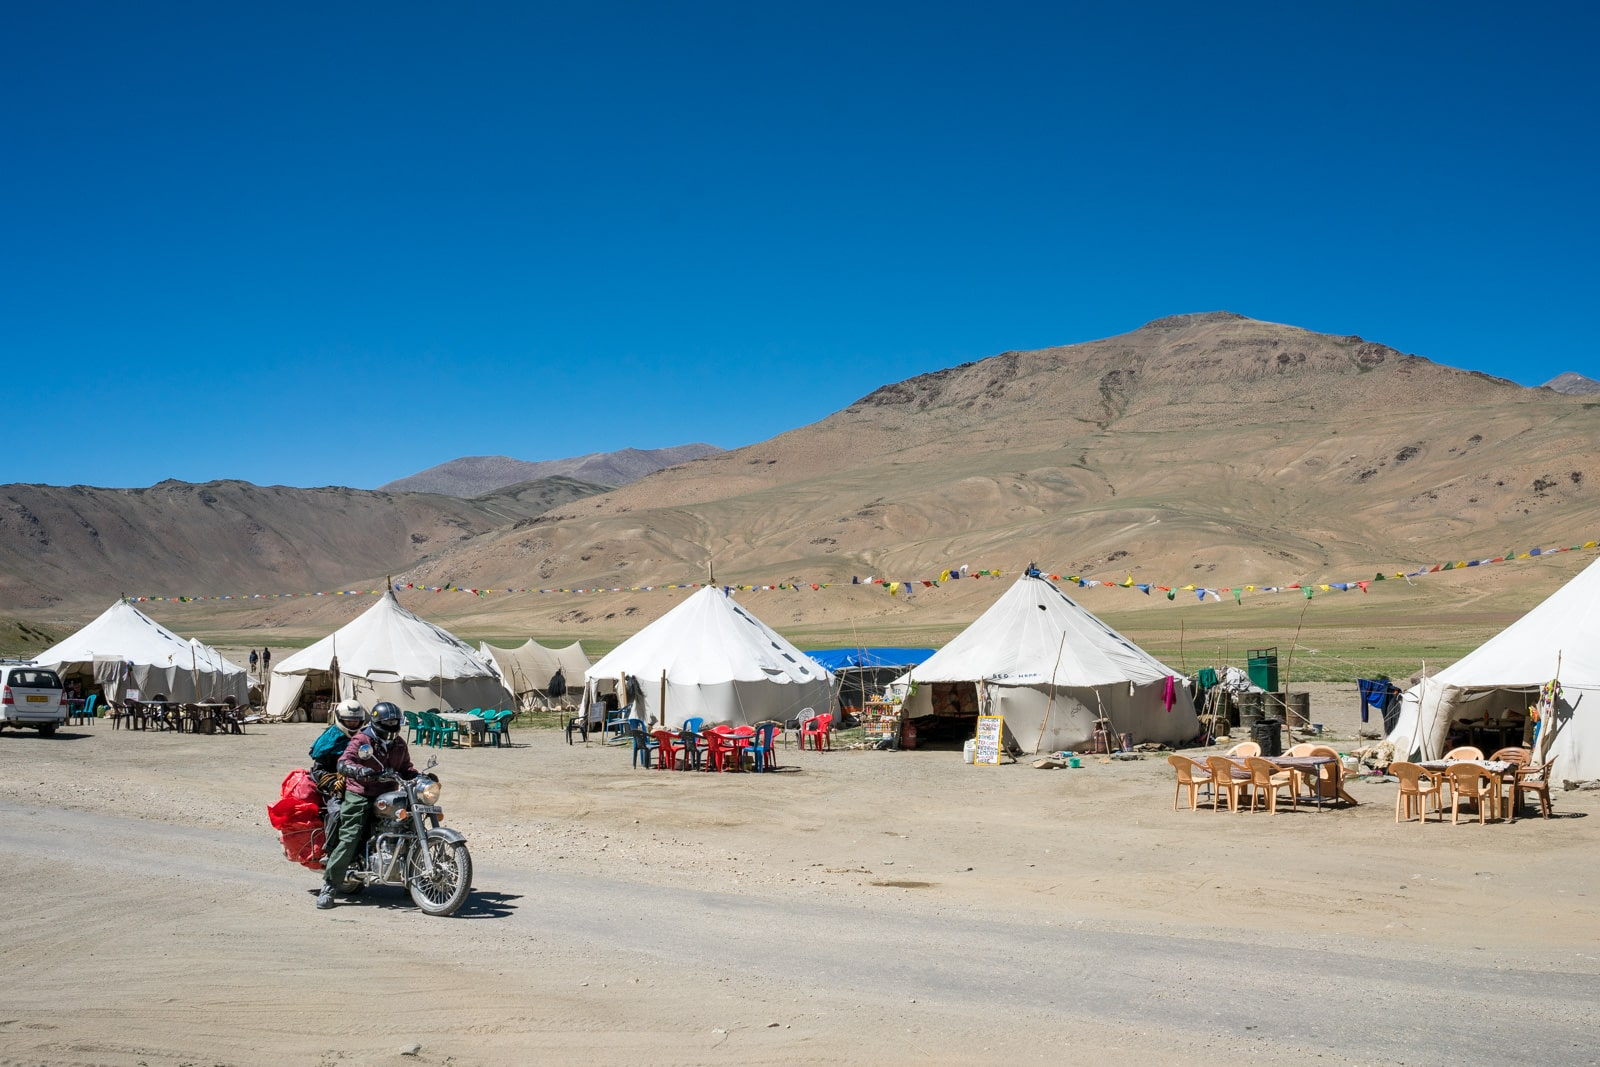 Hitchhiking the Leh - Manali highway in India - Roadside tent camp - Lost With Purpose travel blog